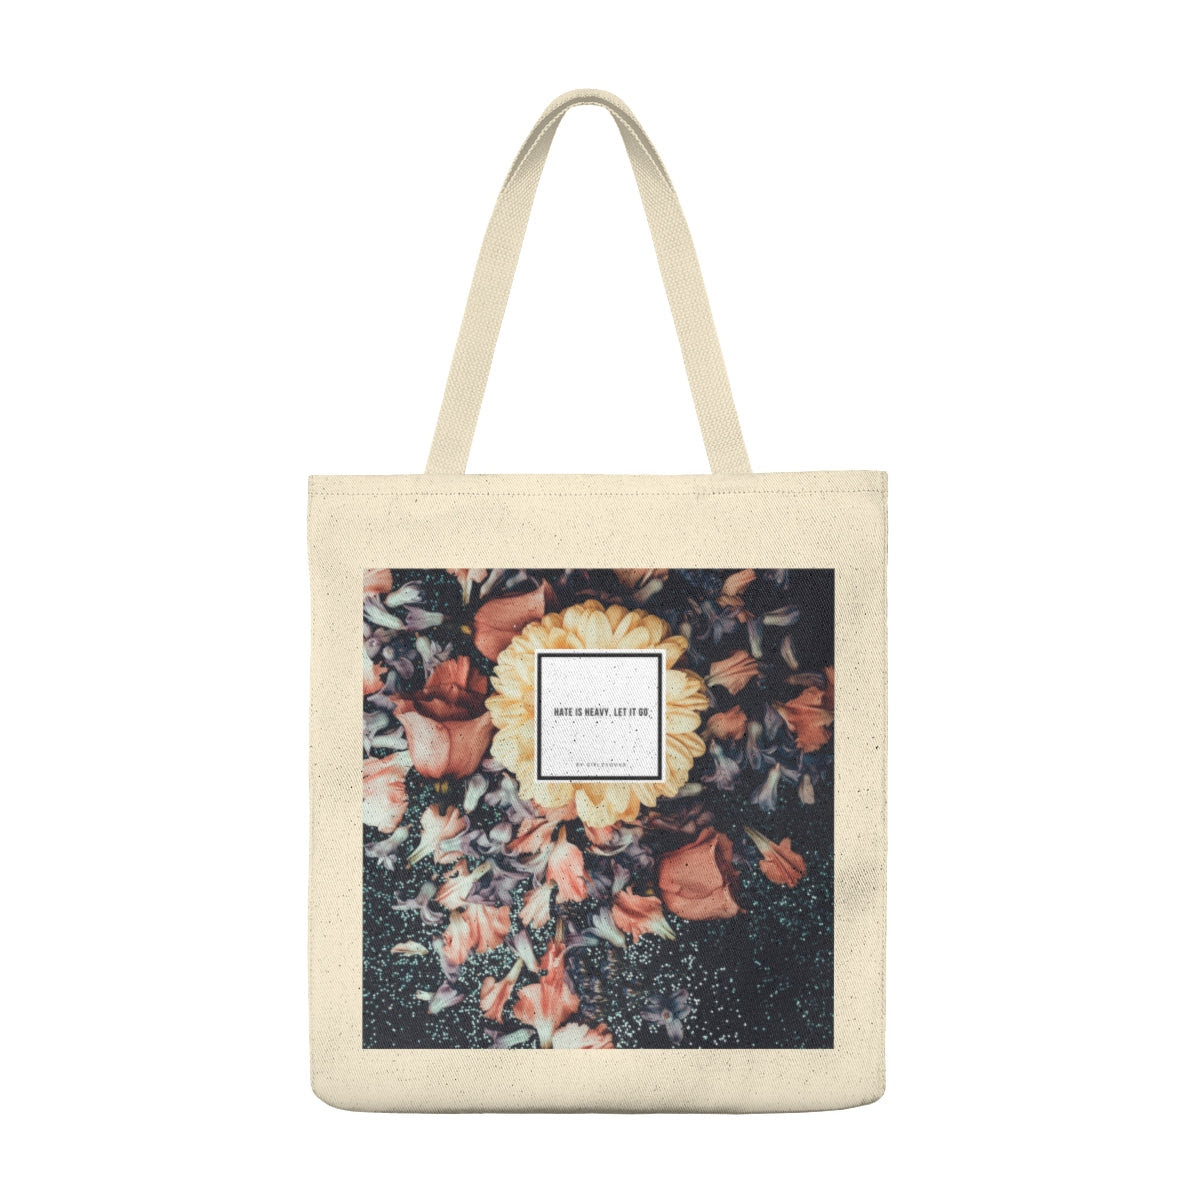 Hate Is Heavy Let It Go Large Tote Bag Girlzsquad